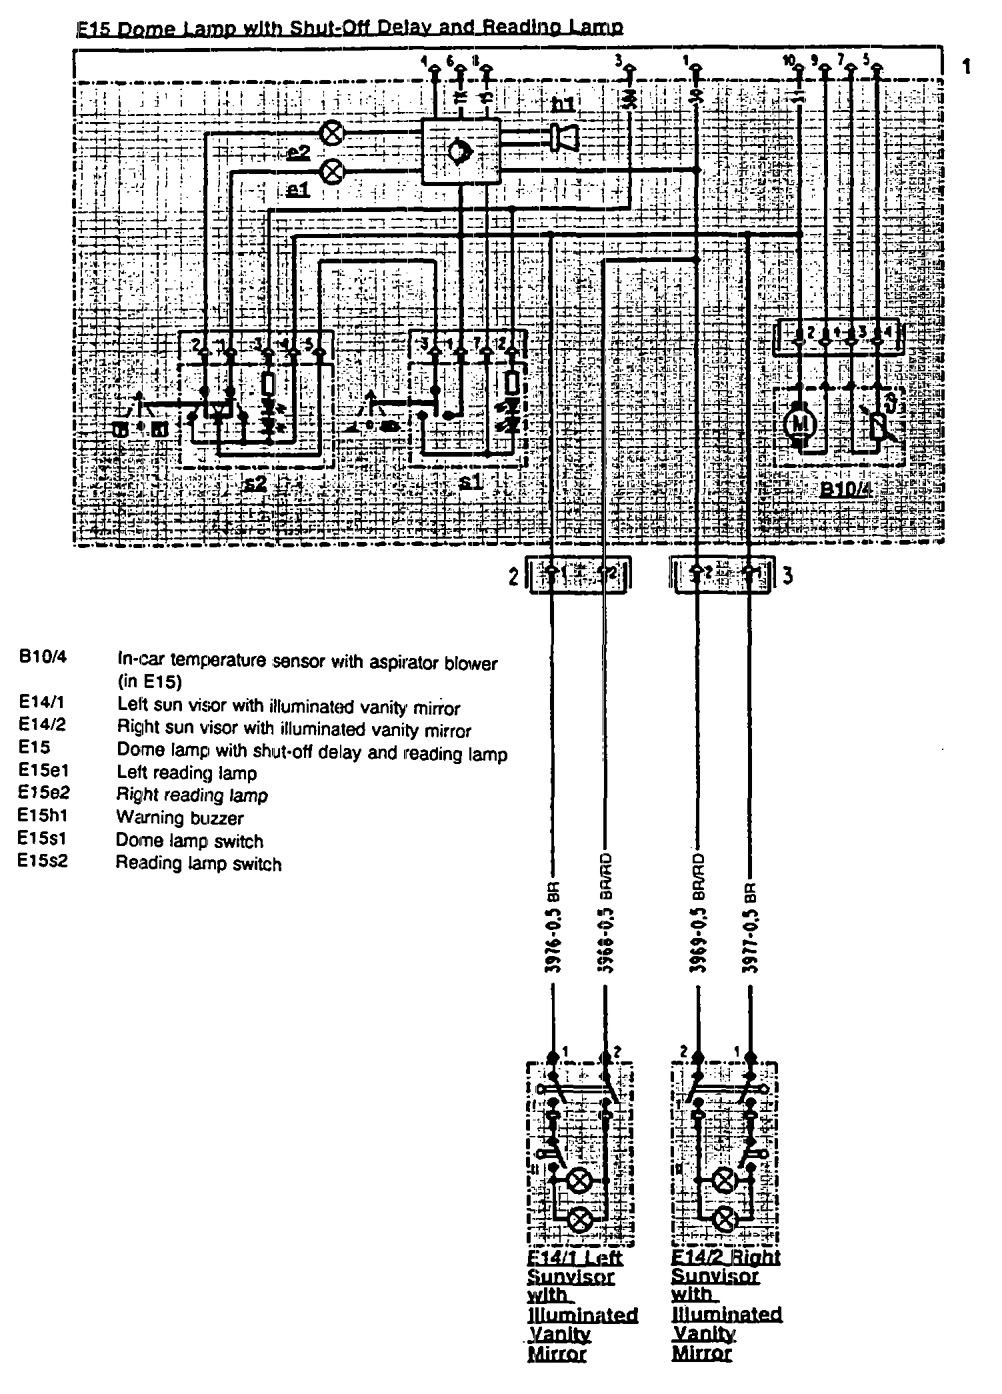 1991 MERCEDES BENZ 300SL FUSE BOX DIAGRAM - Auto Electrical Wiring on freightliner wiring diagram, mercedes electrical diagrams, nissan wiring diagram, mercedes firing order, naza wiring diagram, honda wiring diagram, vw wiring diagram, mercury wiring diagram, mercedes-benz diagram, chevrolet wiring diagram, mercedes wire color codes, mercedes wiring color, taylor wiring diagram, toyota wiring diagram, international wiring diagram, kia wiring diagram, mercedes speedometer, mercedes timing marks, dodge wiring diagram, dayton wiring diagram,